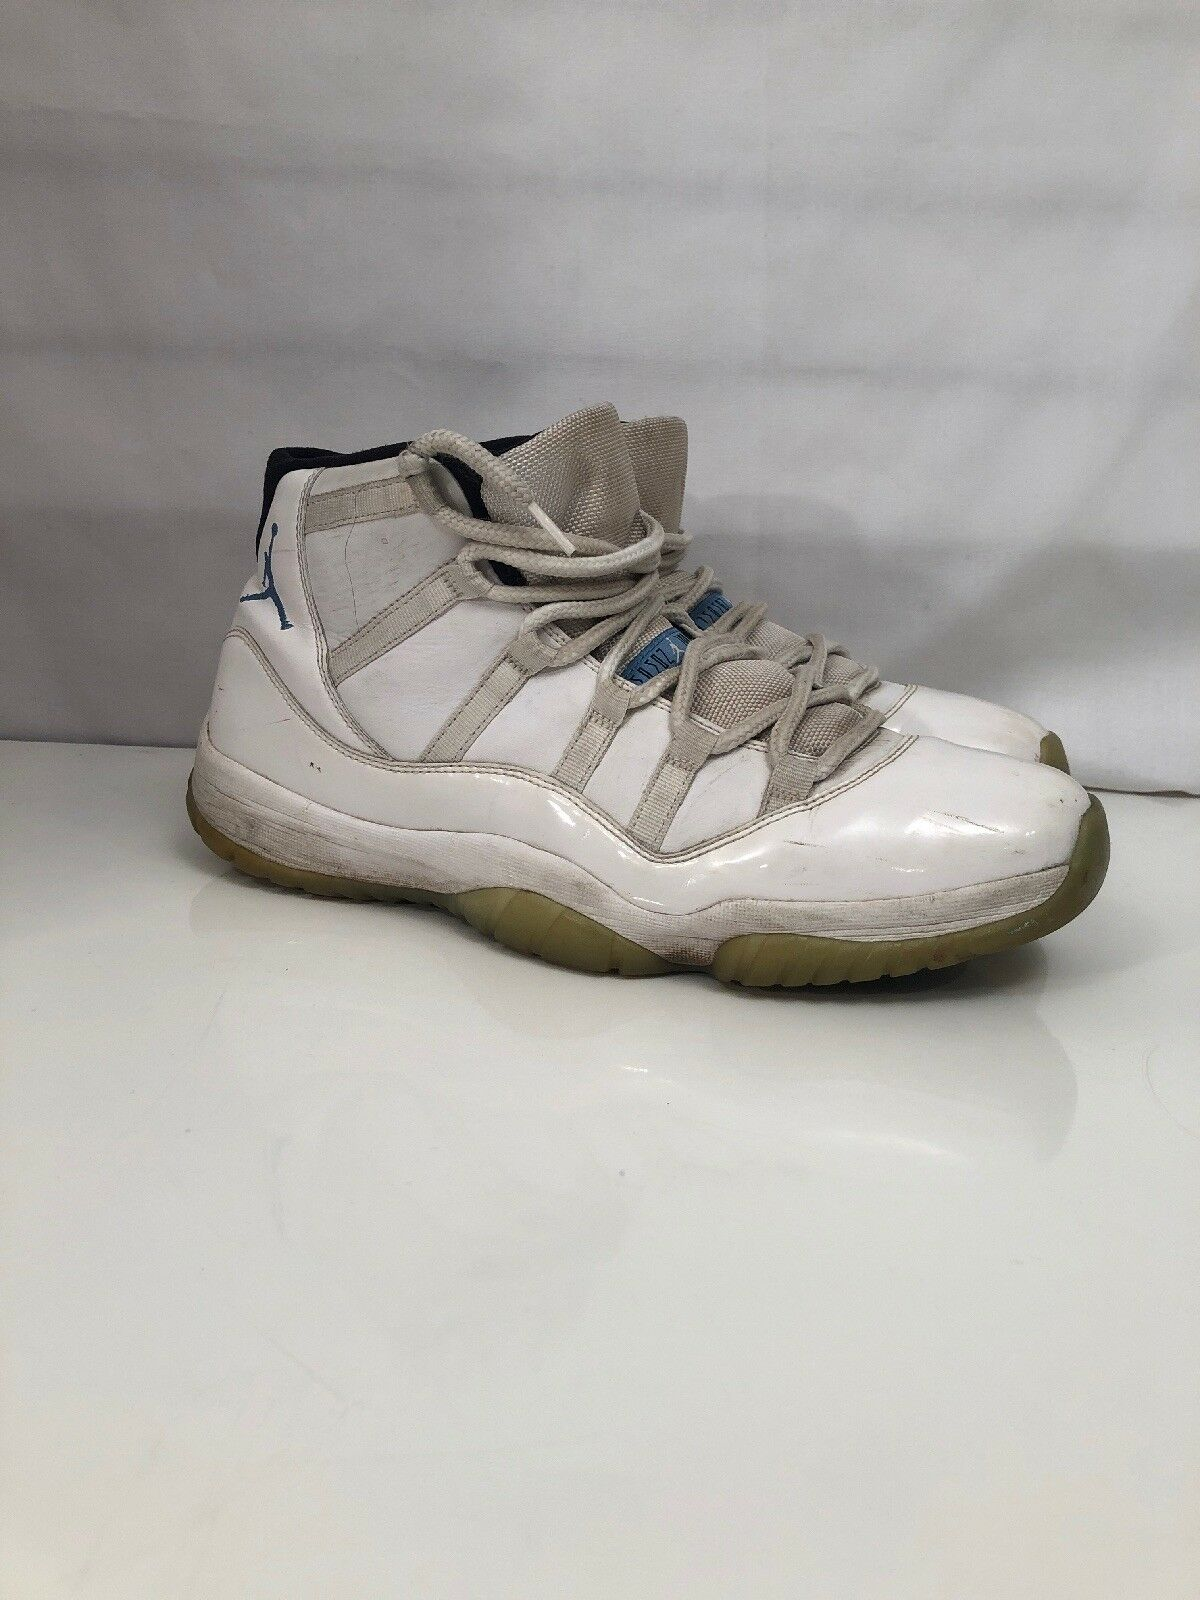 super cheap 373c4 a4507 Air Jordan Retro 11 Columbia Size shoes Sneakers Hype White Men s Jumpan  Tree 11 nwebru4056-Athletic Shoes